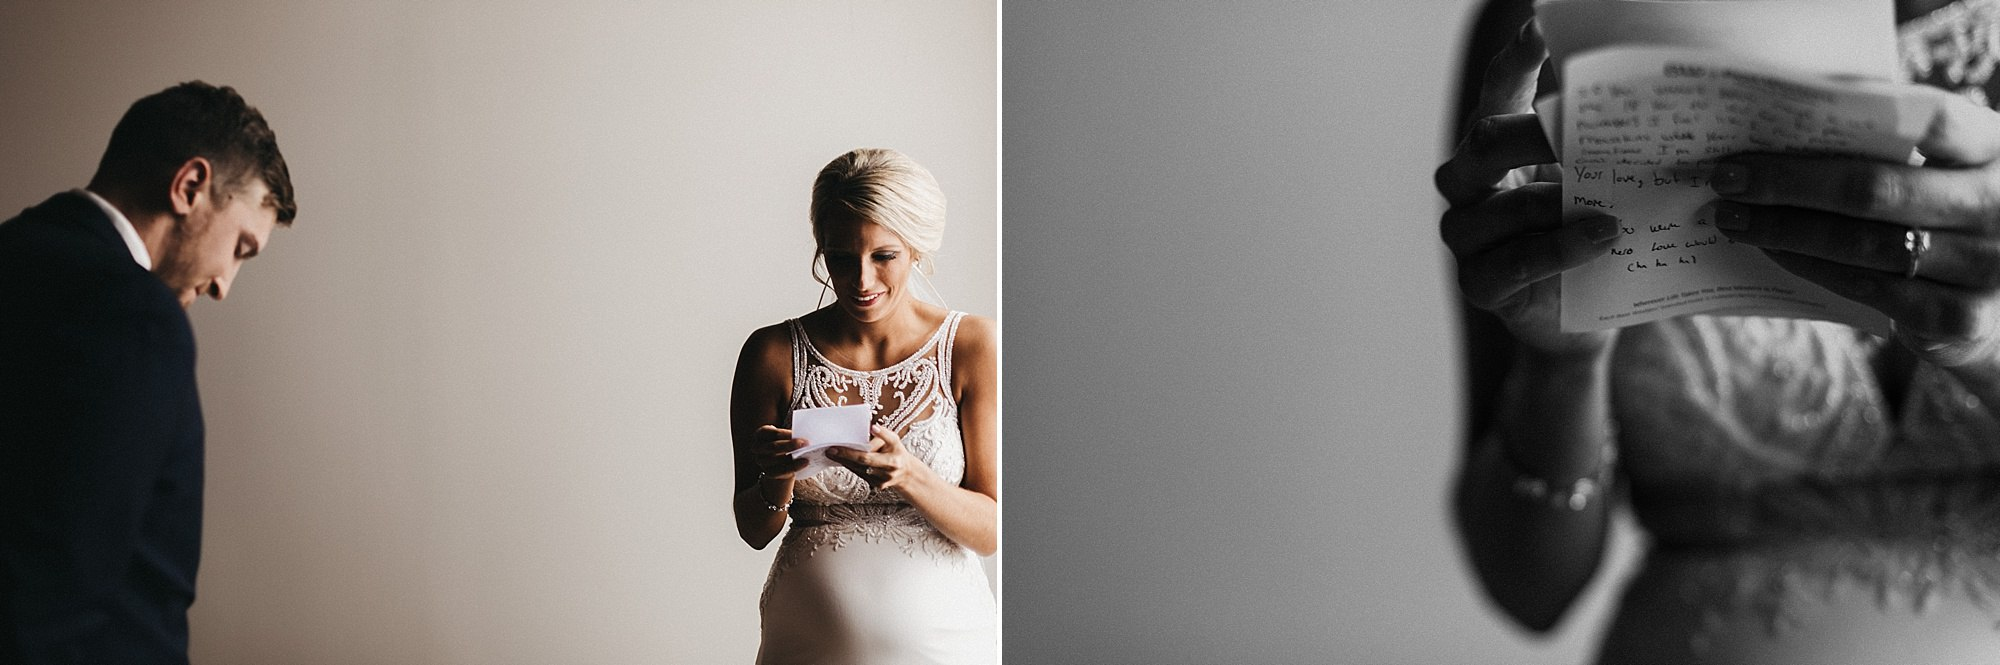 Pregnant Bride at the Maytag Event Complex in Newton Iowa